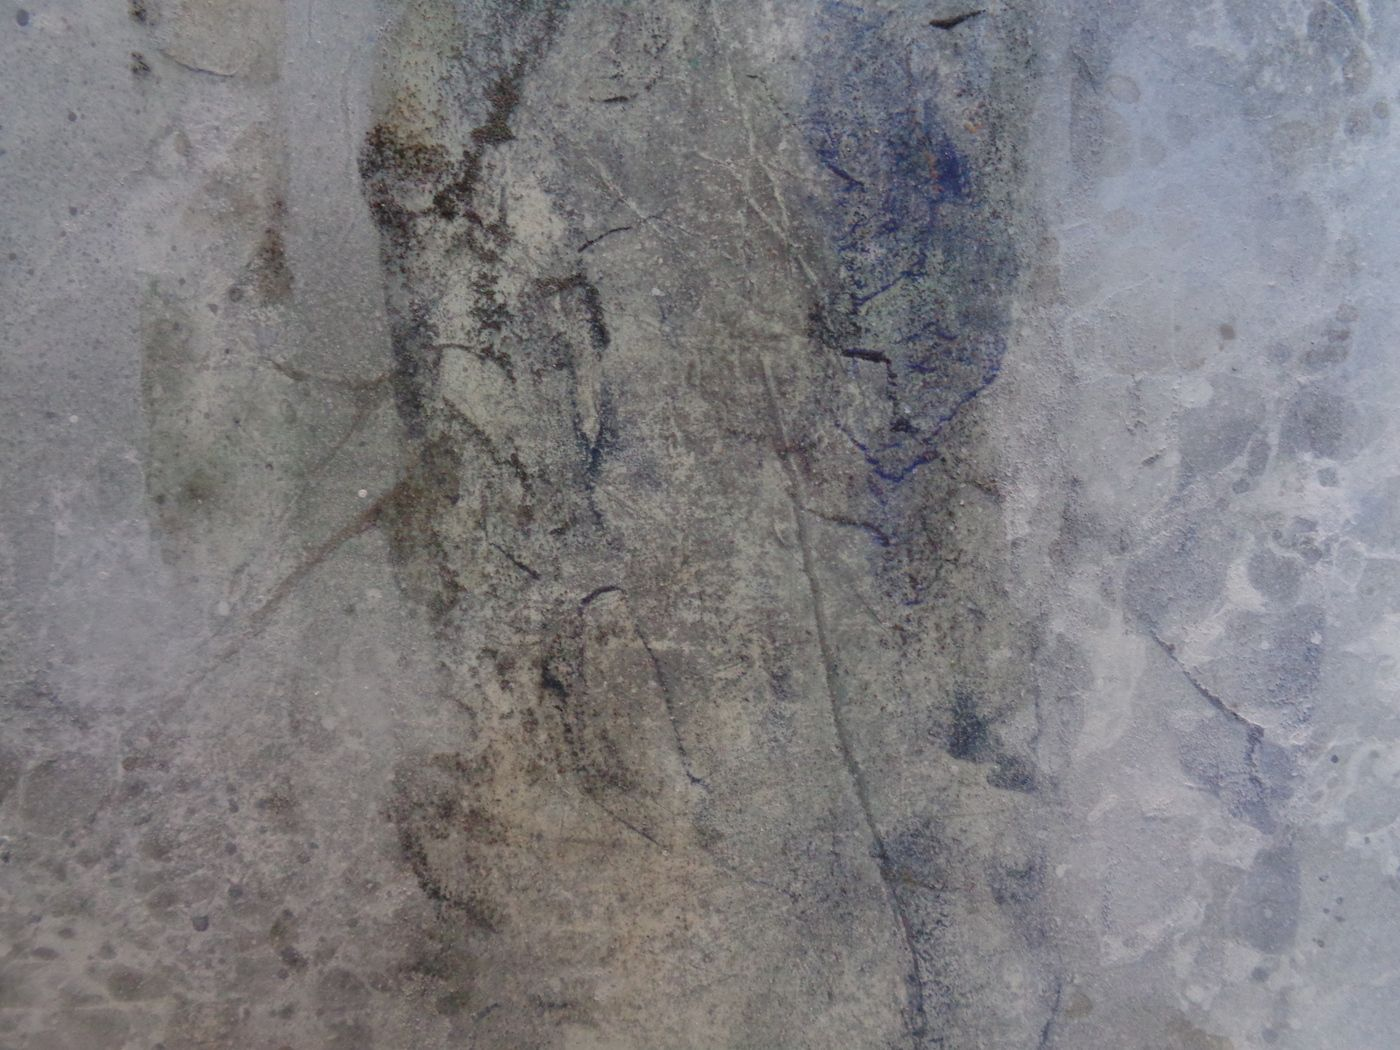 Plenitude II,Chen Yiching,Contemporary painting, detail 2